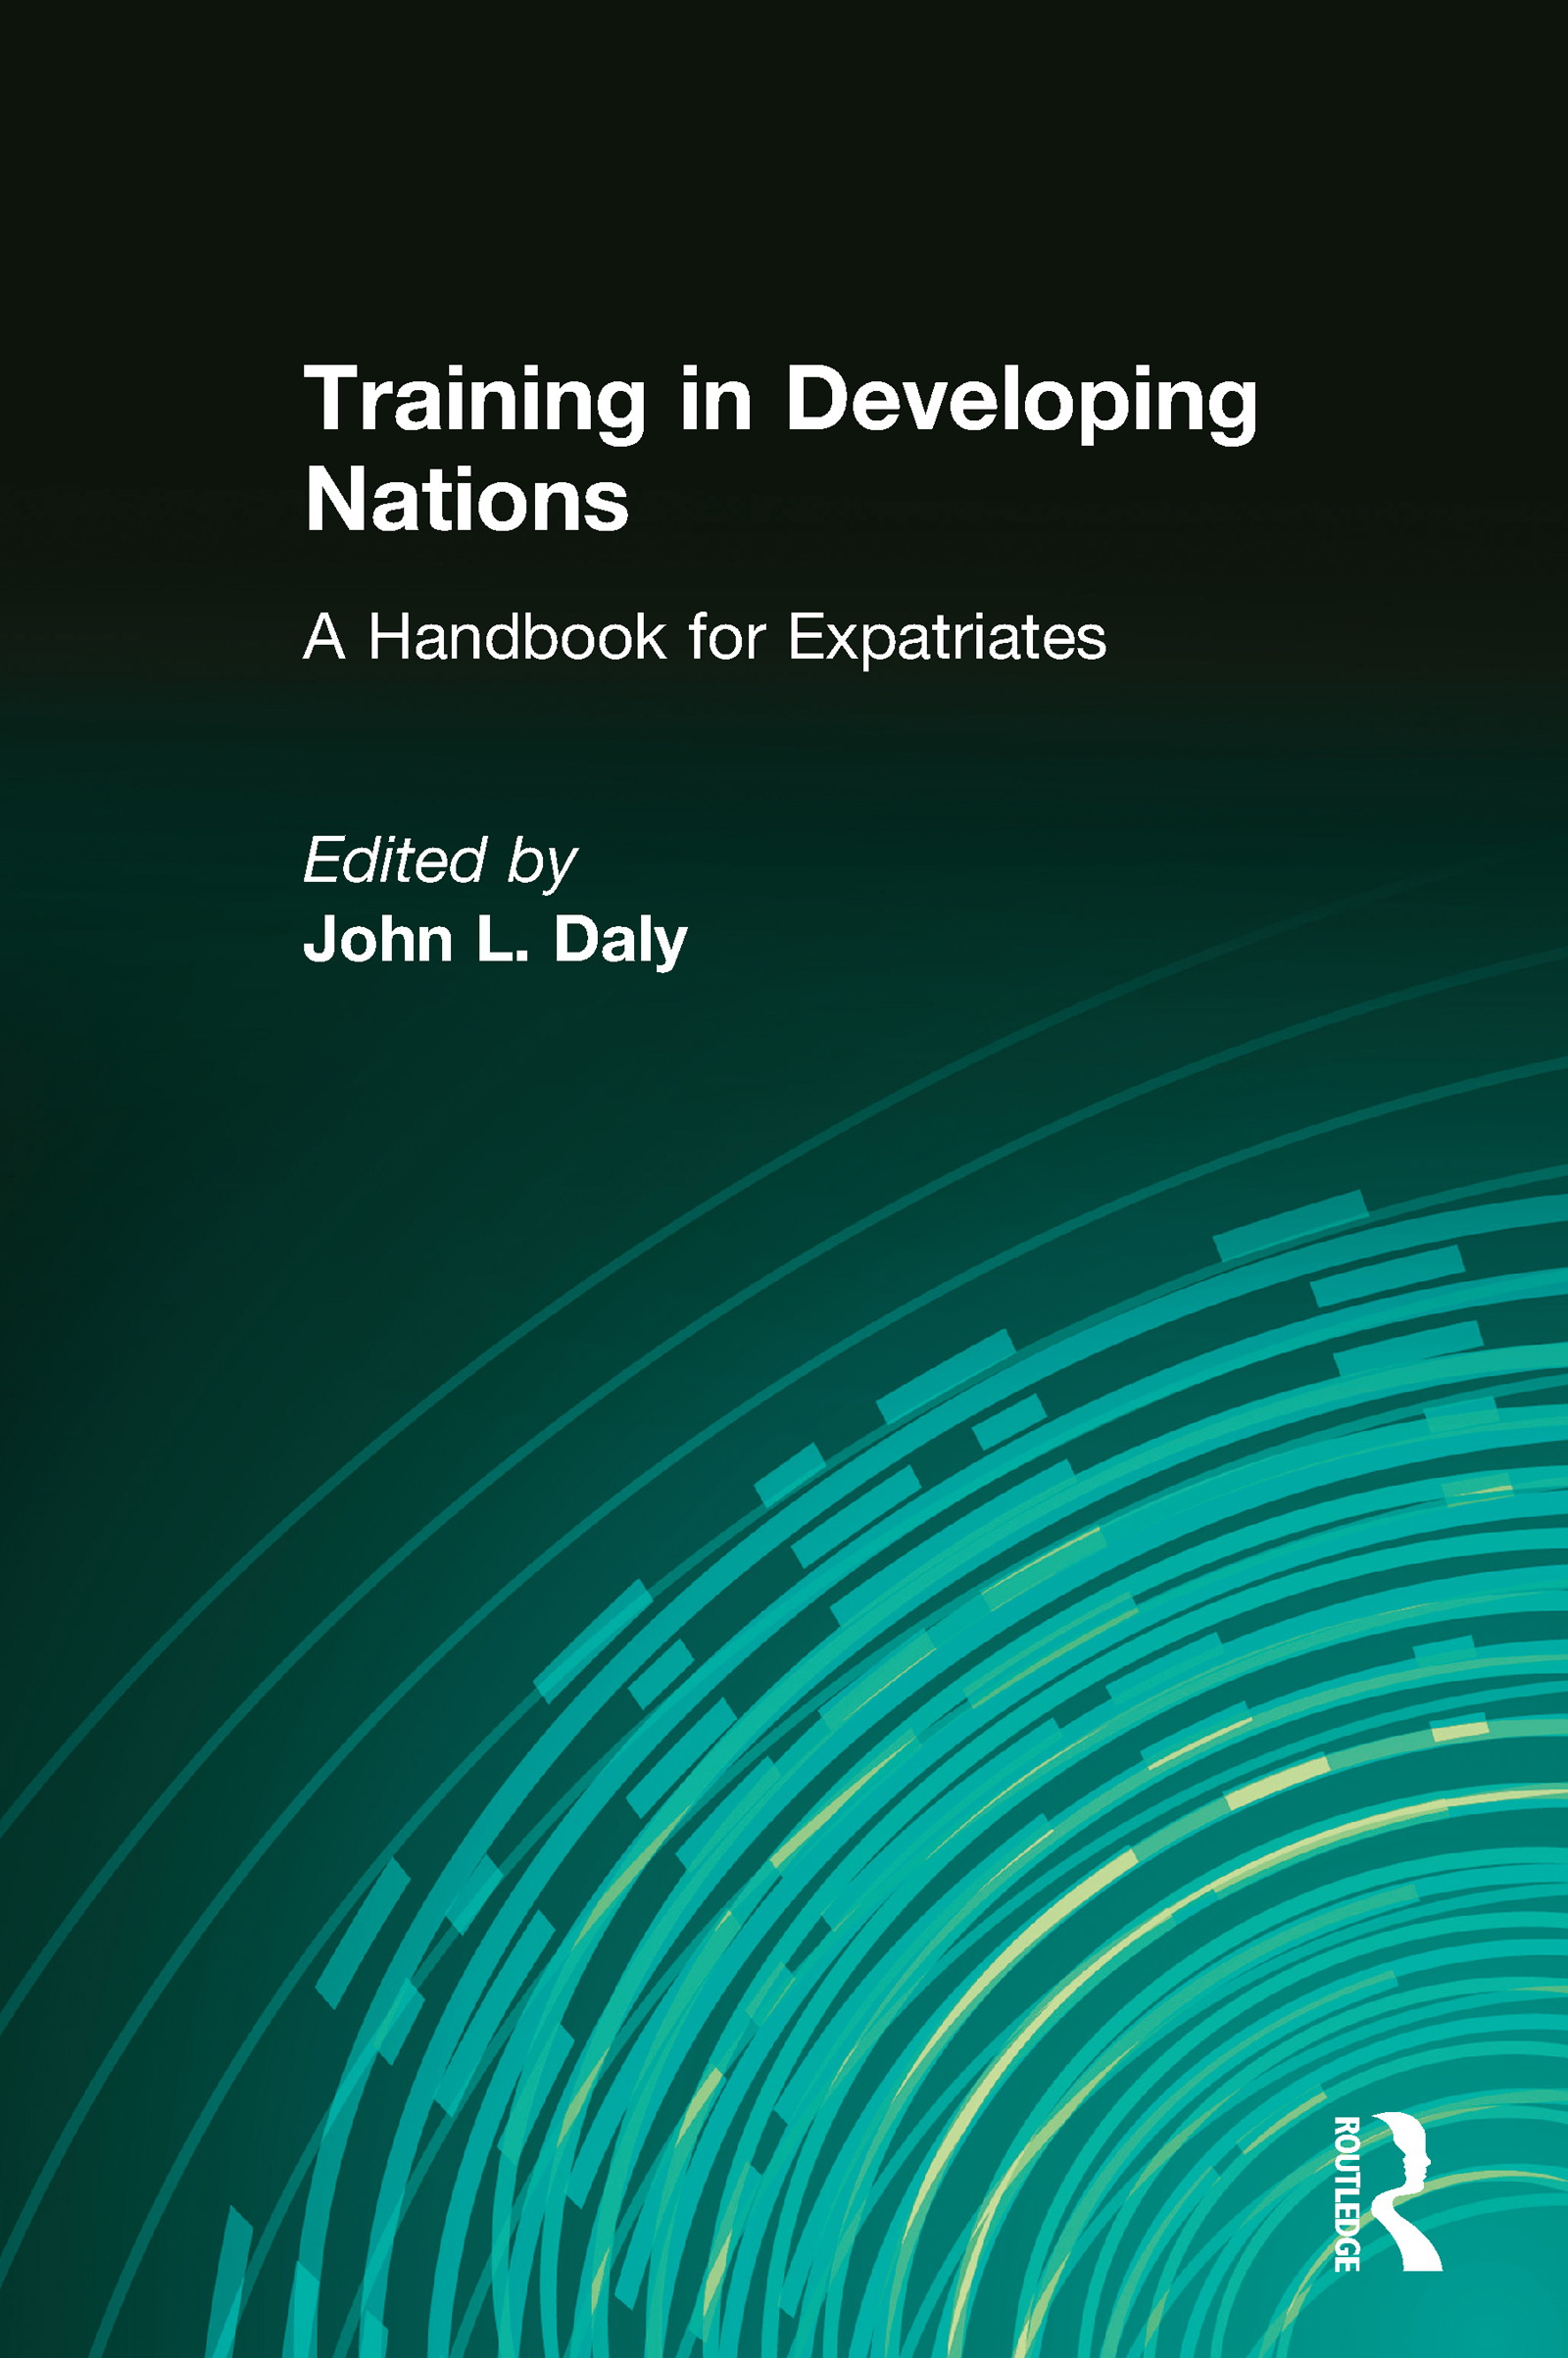 Training in Developing Nations: A Handbook for Expatriates: A Handbook for Expatriates, 1st Edition (Paperback) book cover